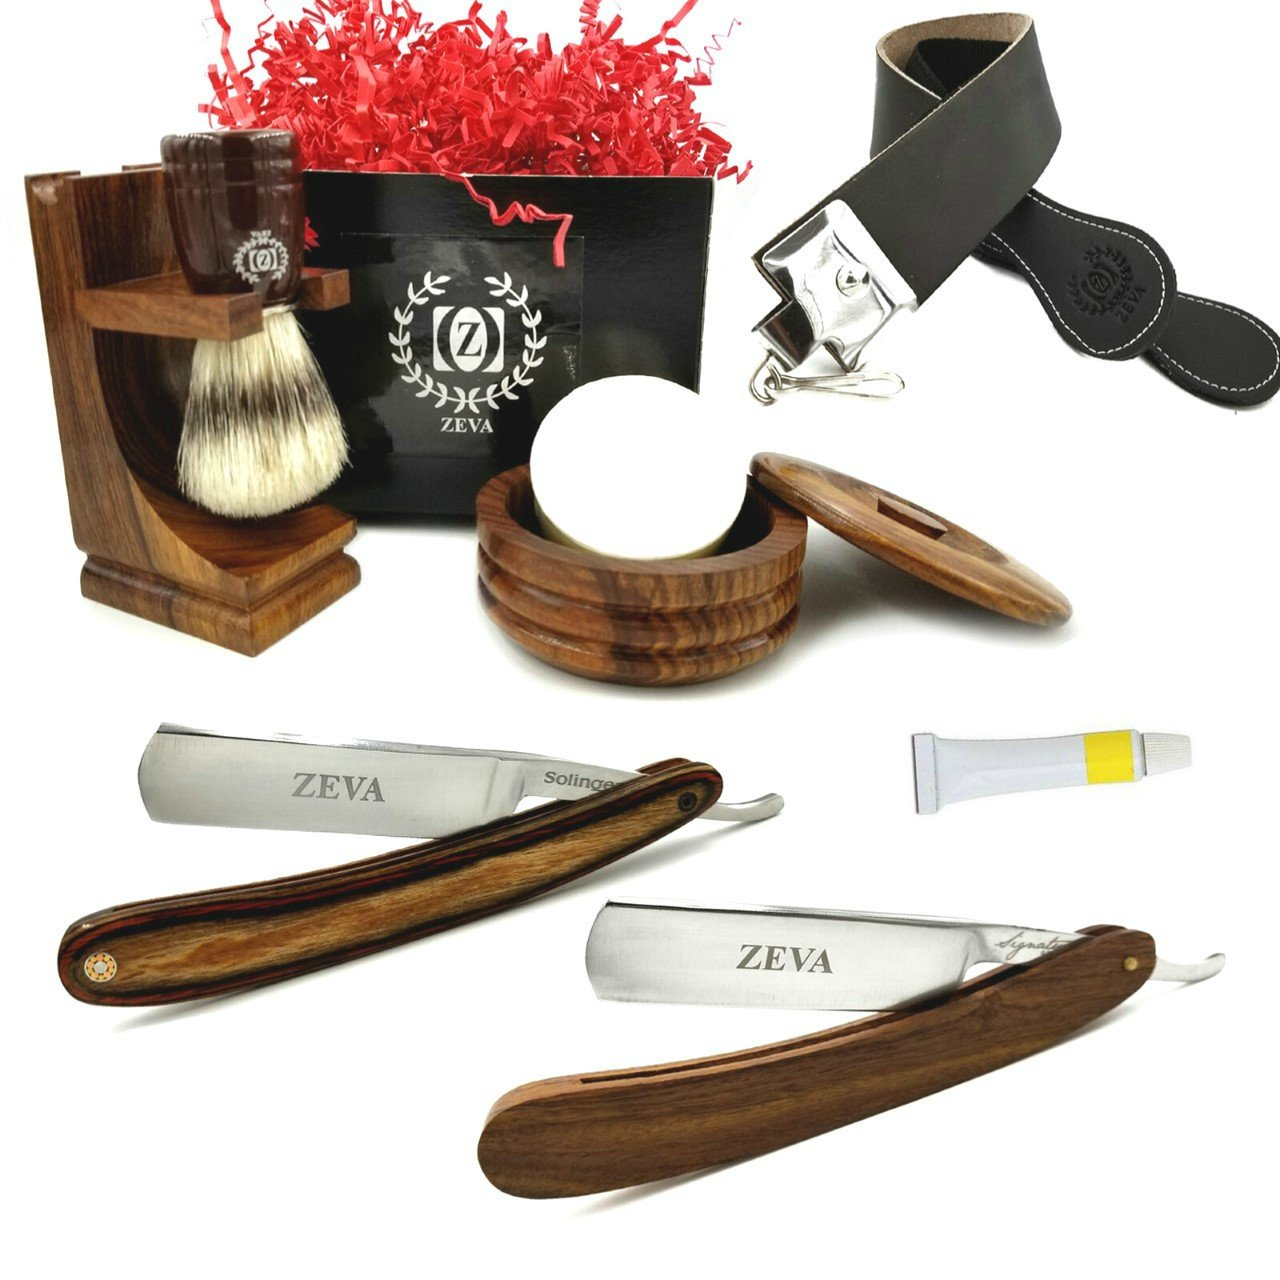 Men's Wood Straight Razor Shaving Set Vintage Wooden Dovo Solingen Paste Shave Ready Straight Razors, Mission Style Wooden Stand for Razors Pure Badger Shaving Brush Mug Soap